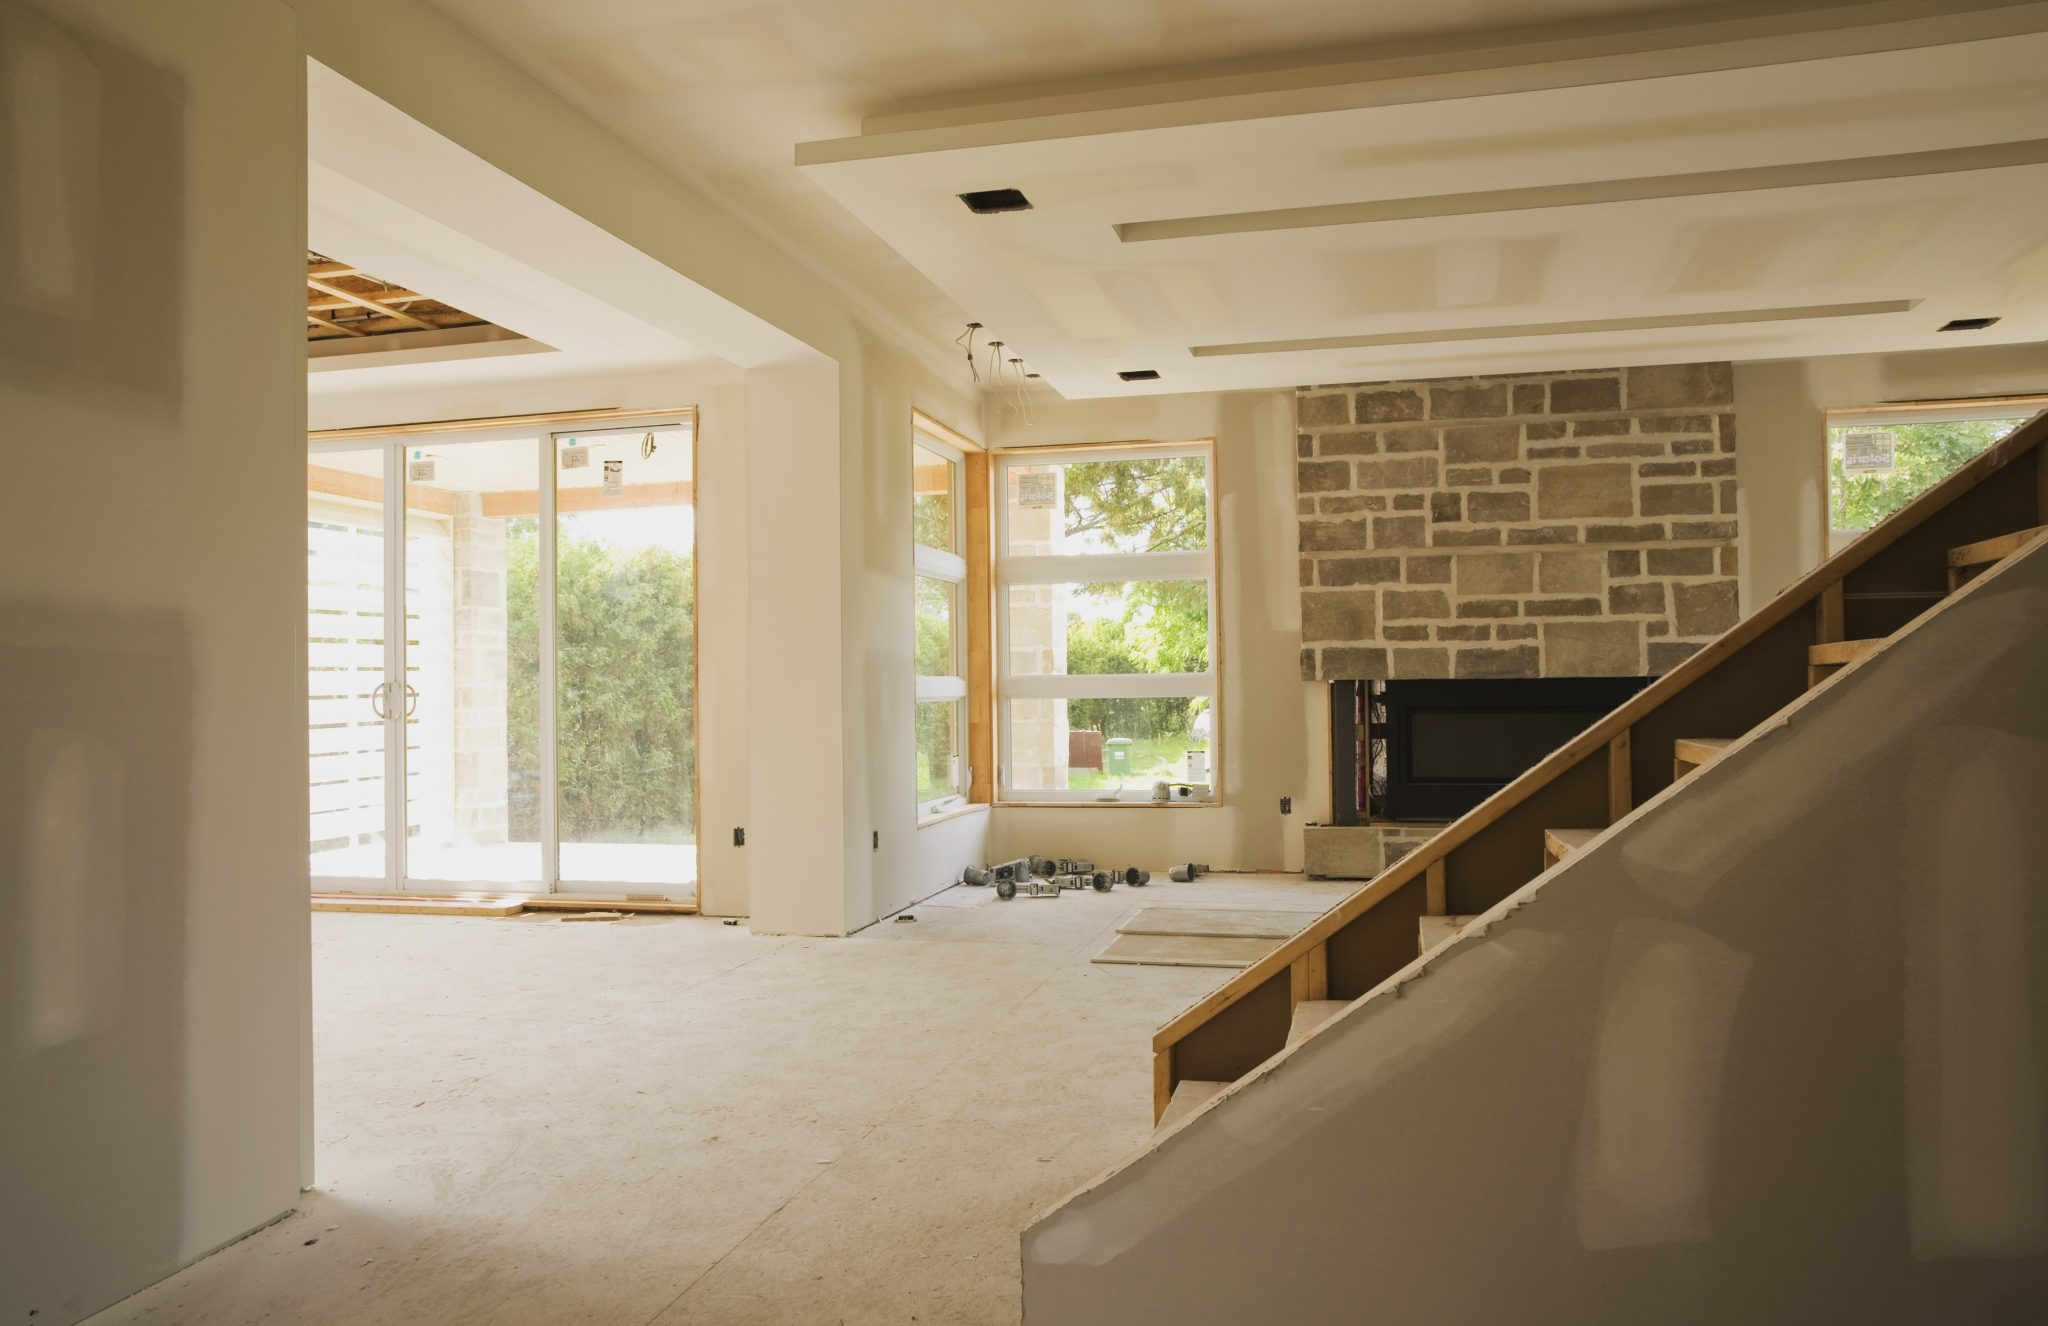 Does A Finished Basement Add Home Value? | Zillow